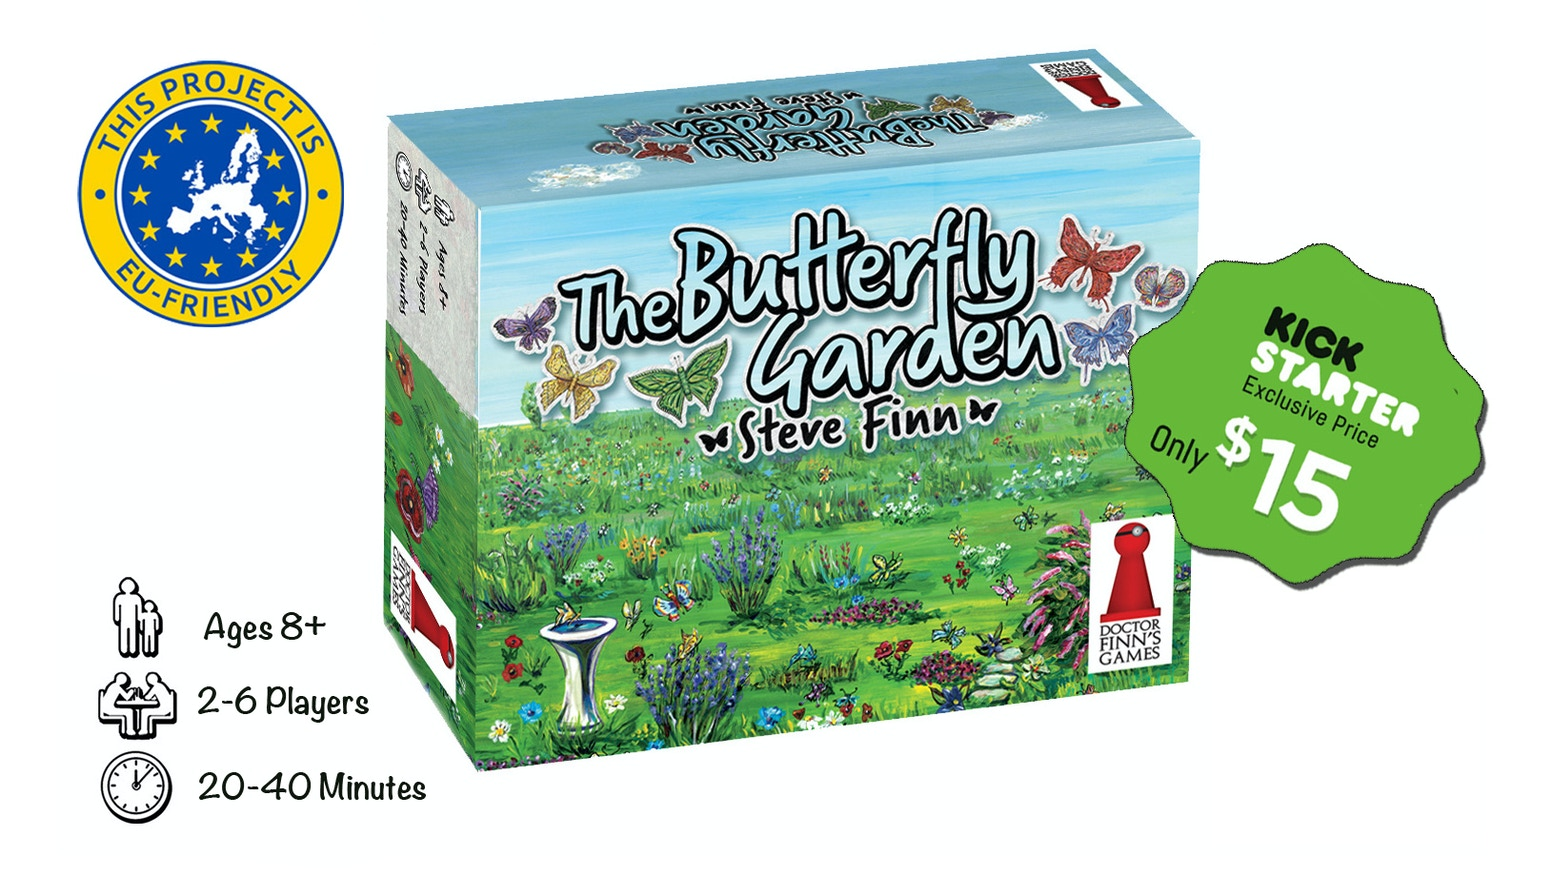 Catch beautiful butterflies in this quick, interesting, and artfully illustrated card game by the designer of Biblios.